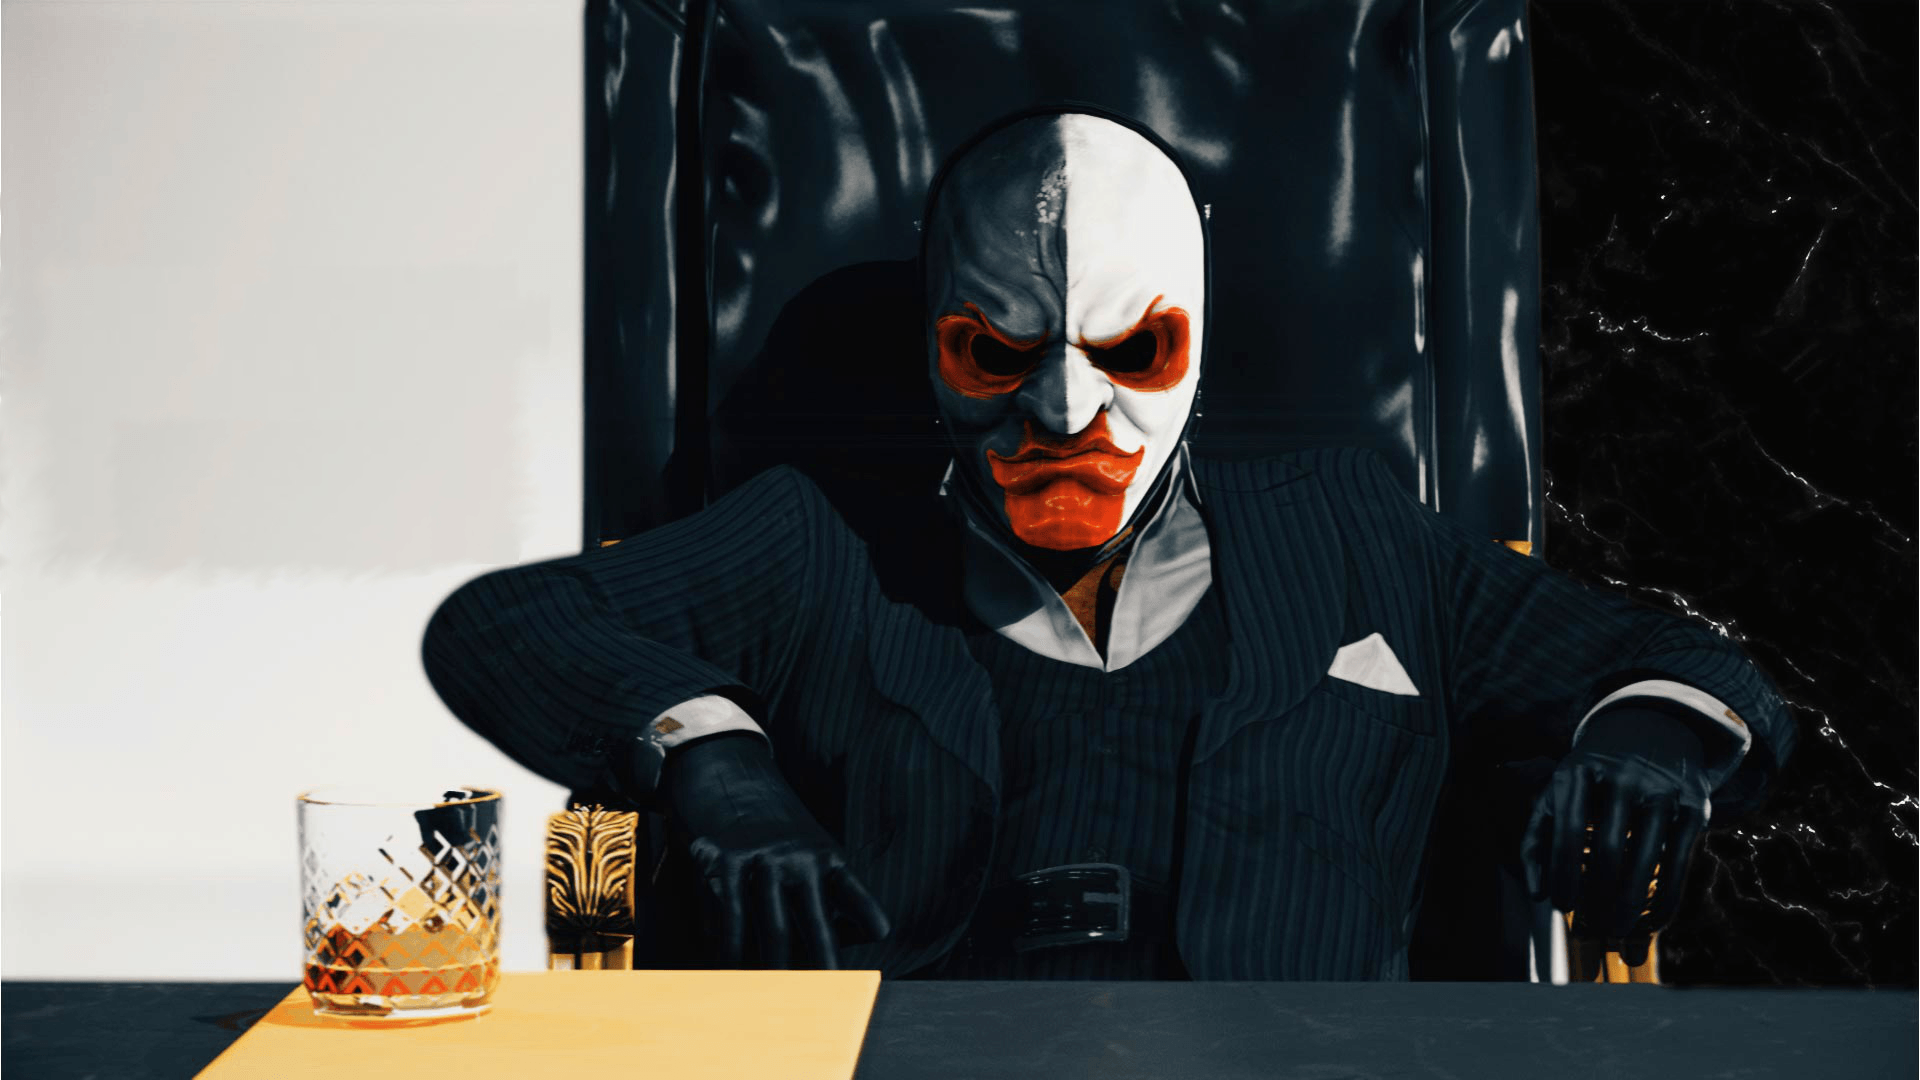 Payday 2 Wallpapers - Top Free Payday 2 Backgrounds ...